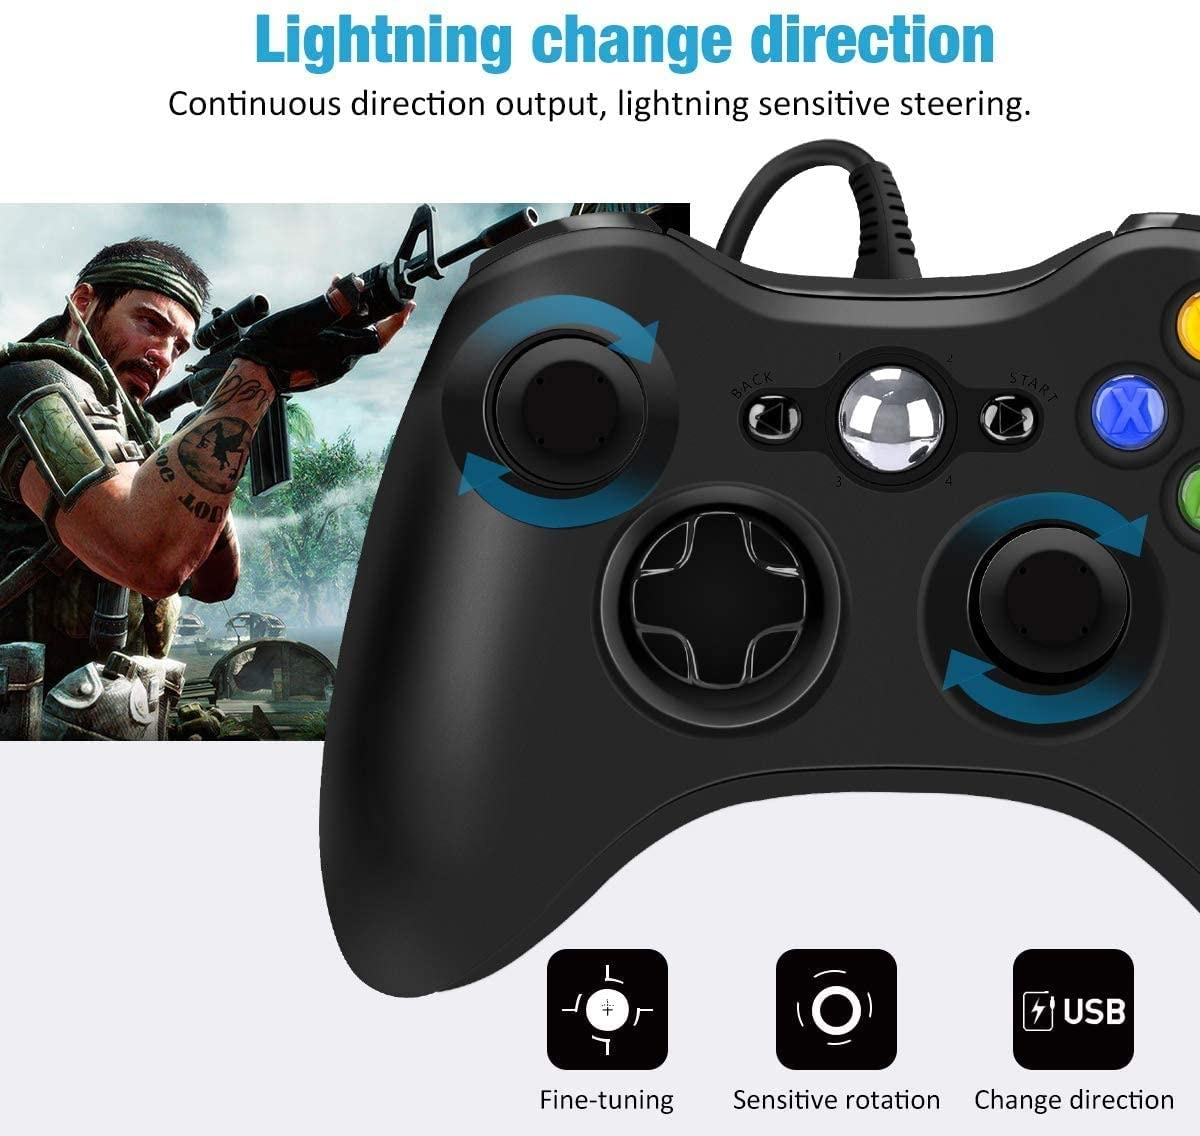 USB Wired Controller Game Accessories Gamepad Joypad Joystick For Microsoft XBOX360 Console PC Black - 6